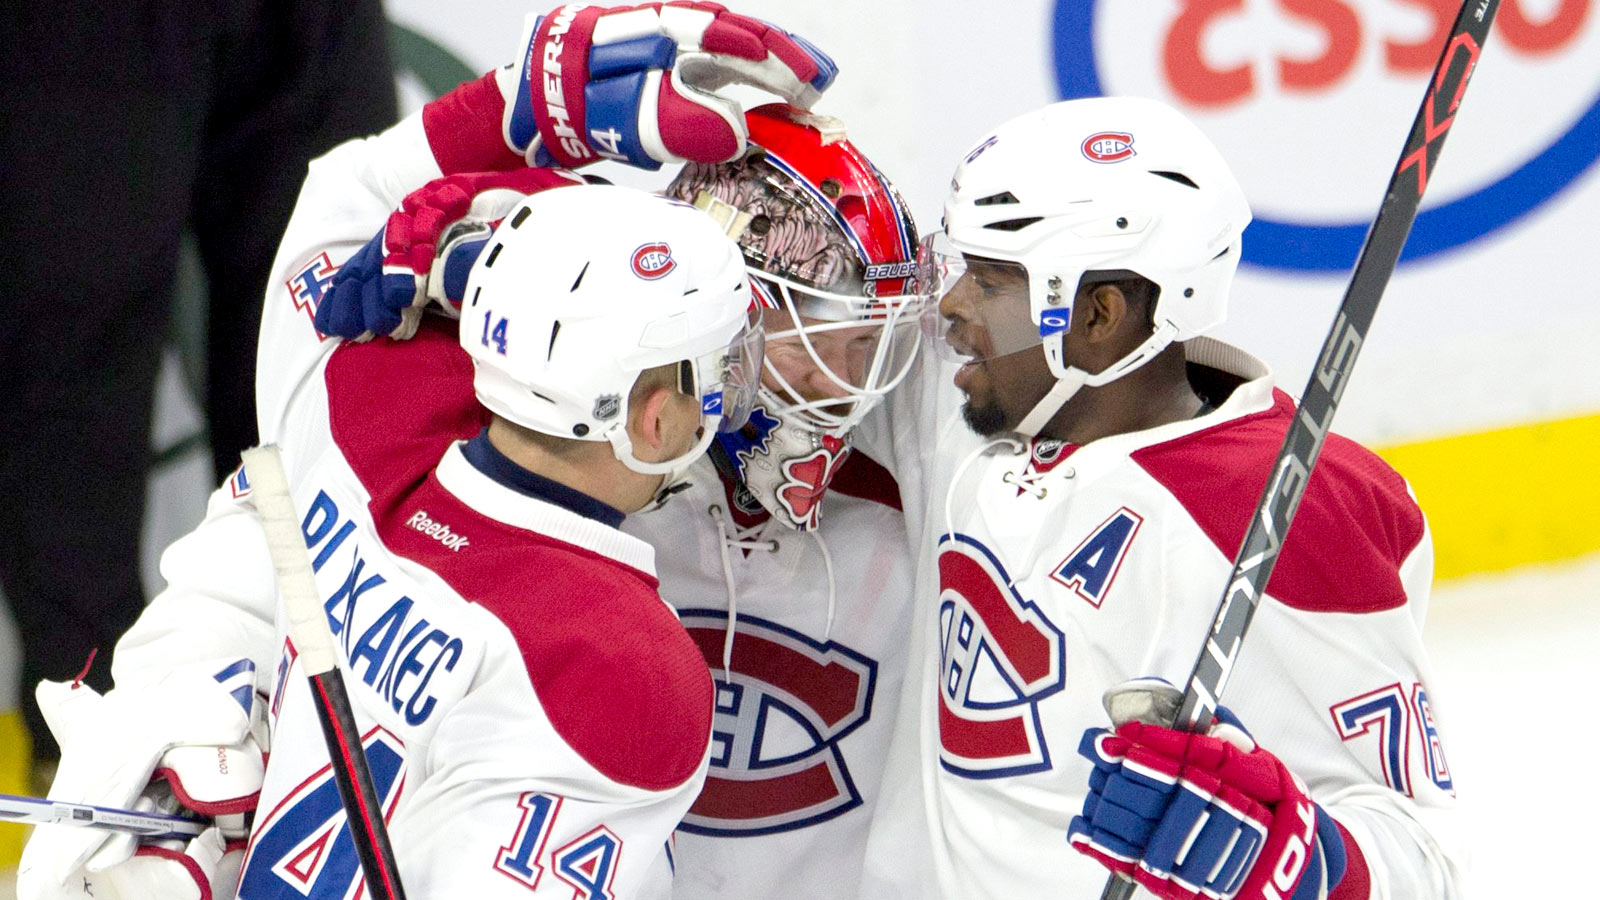 Condon stars in NHL debut, keeps Canadiens perfect through three games